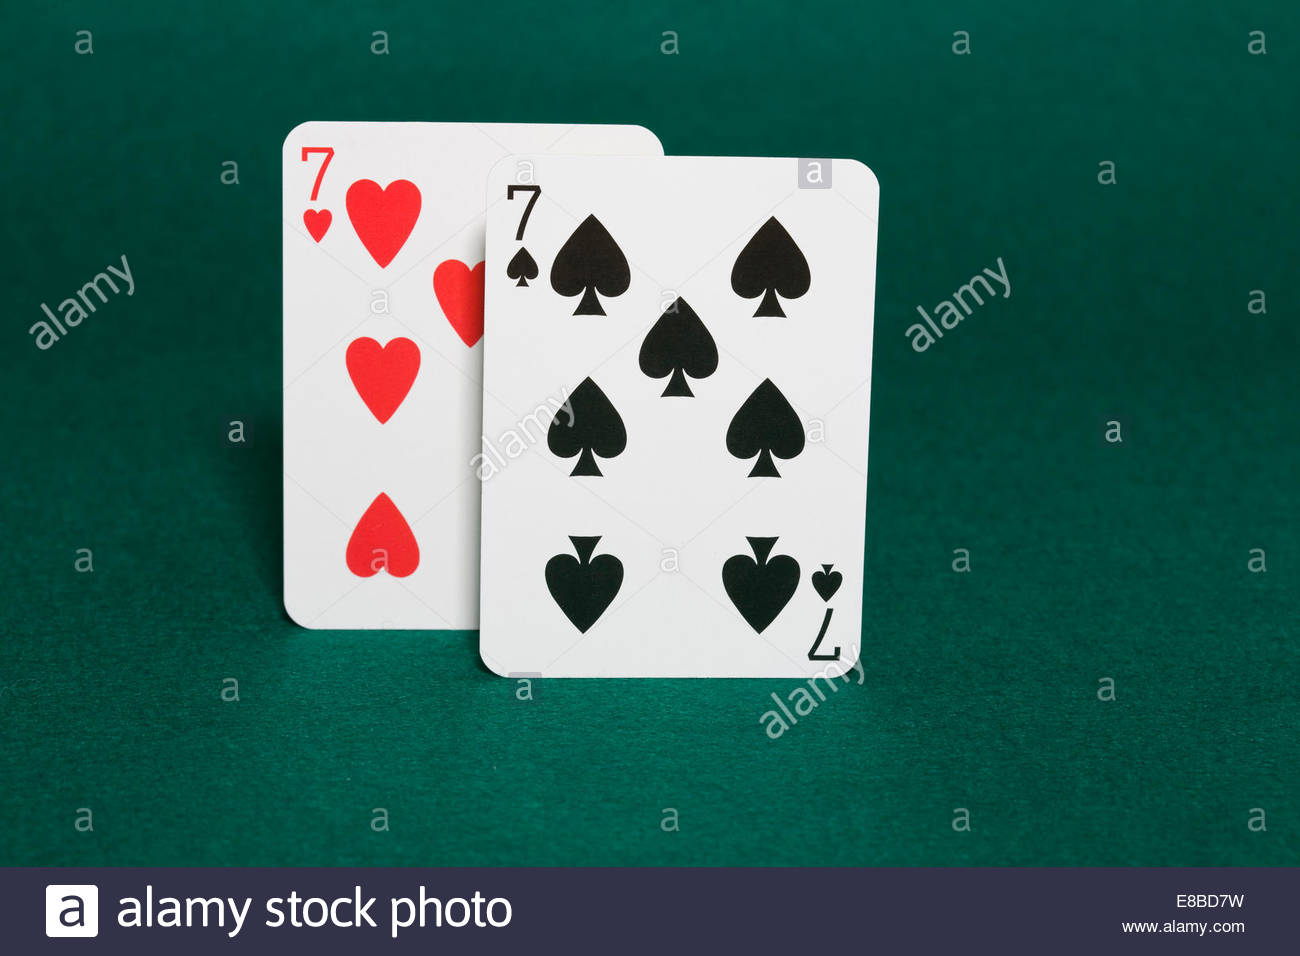 Closeup of pocket sevens starting hands in hold'em poker also called walking sticks in horizonal view - Stock Image